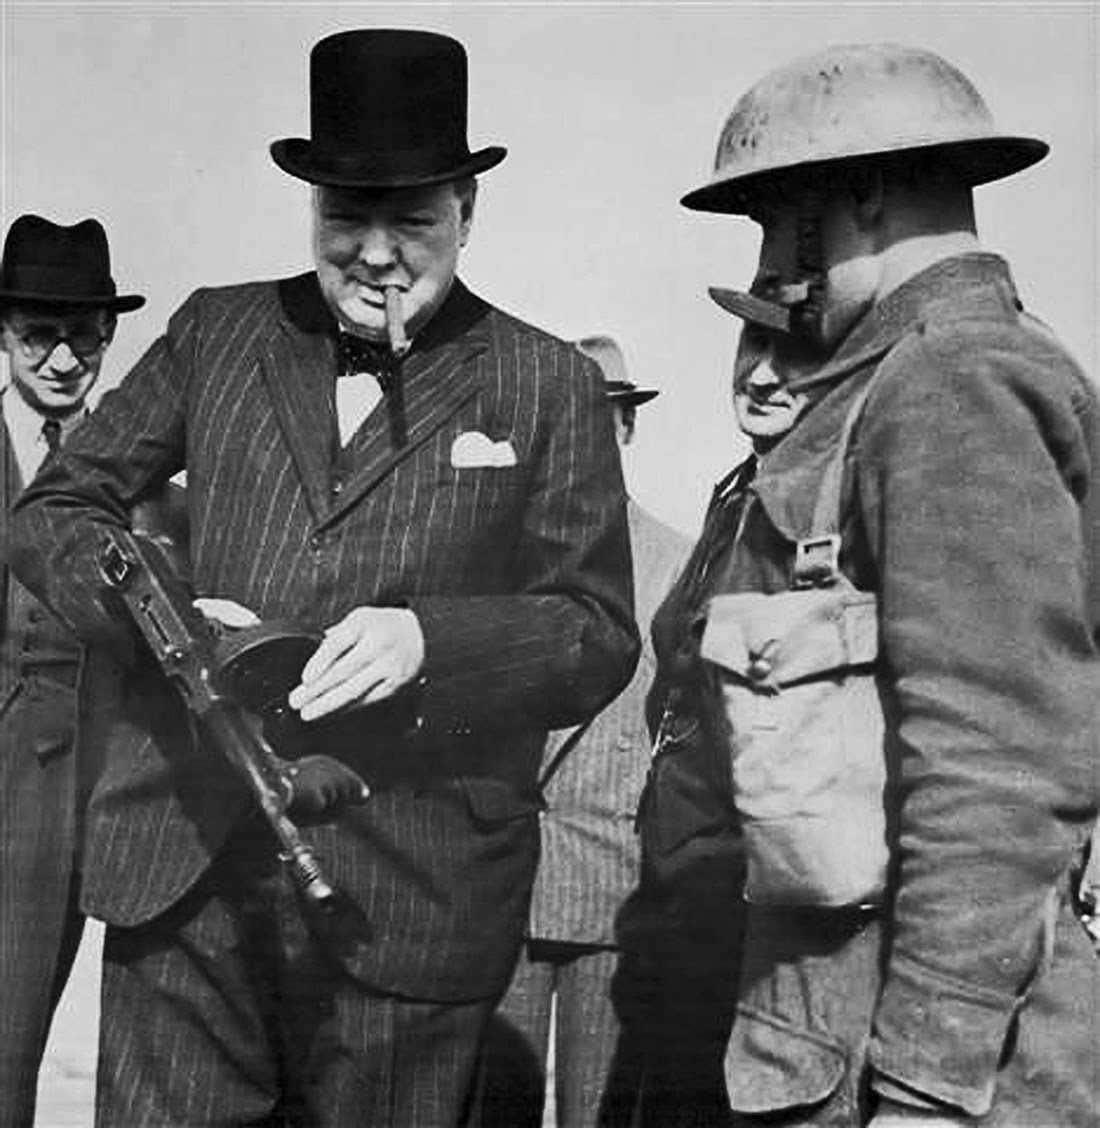 winston churchill french revolution In 1919 webster published the french revolution: ↑ churchill, winston s zionism secret societies and subversive movements by nesta webster a free ebook.